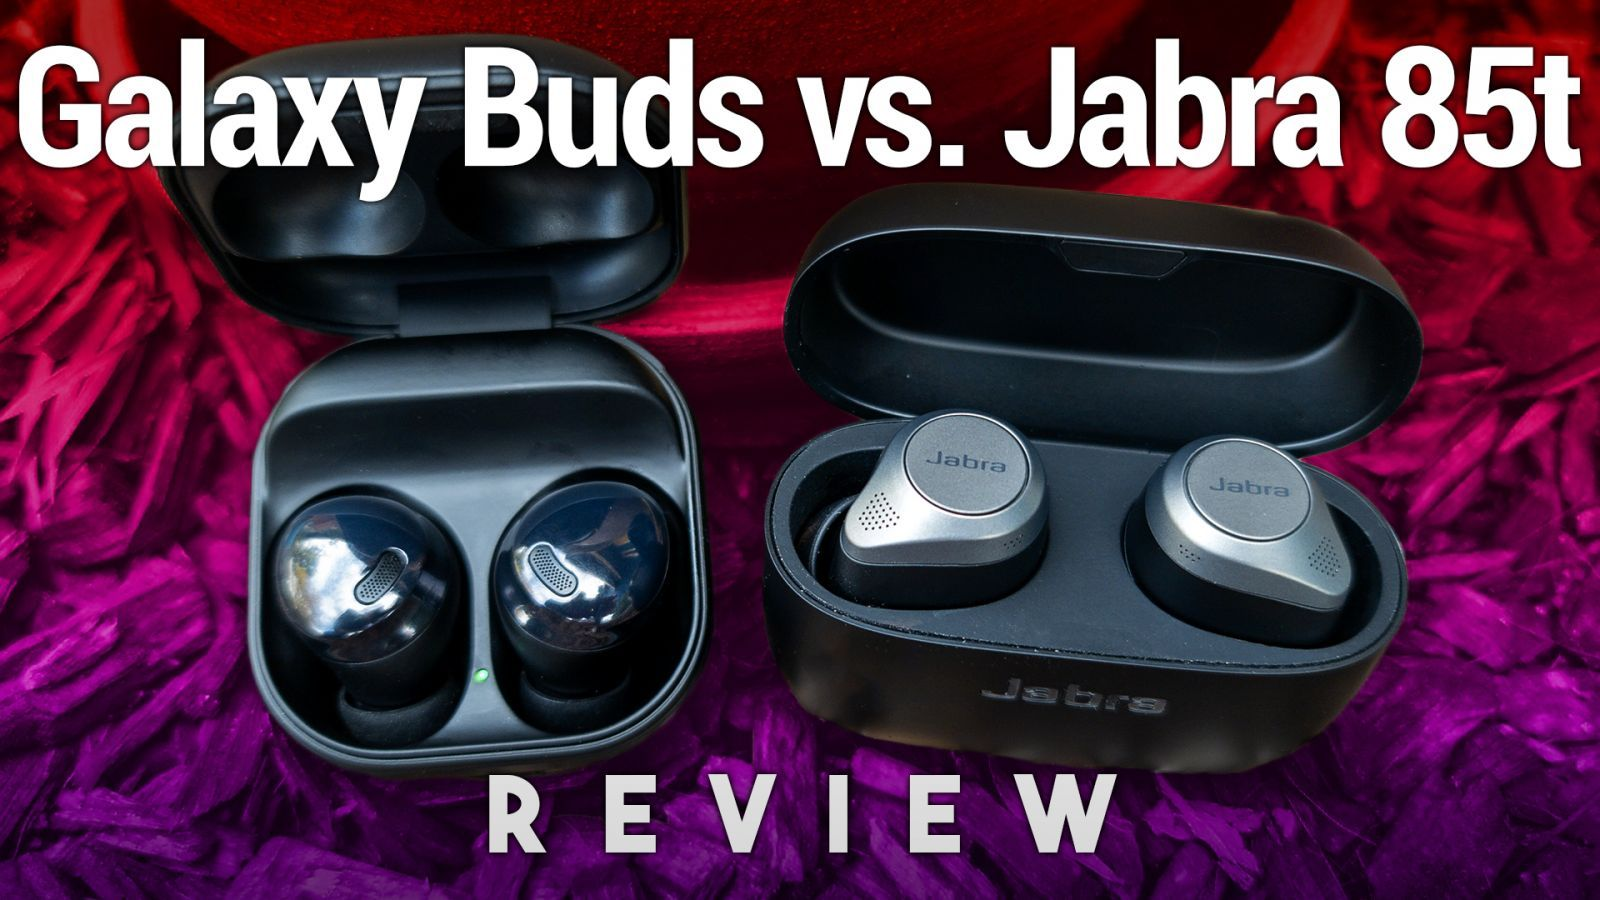 Galaxy Buds Pro vs. Jabra Elite 85t Review - Two Great Noise-Canceling Earbuds